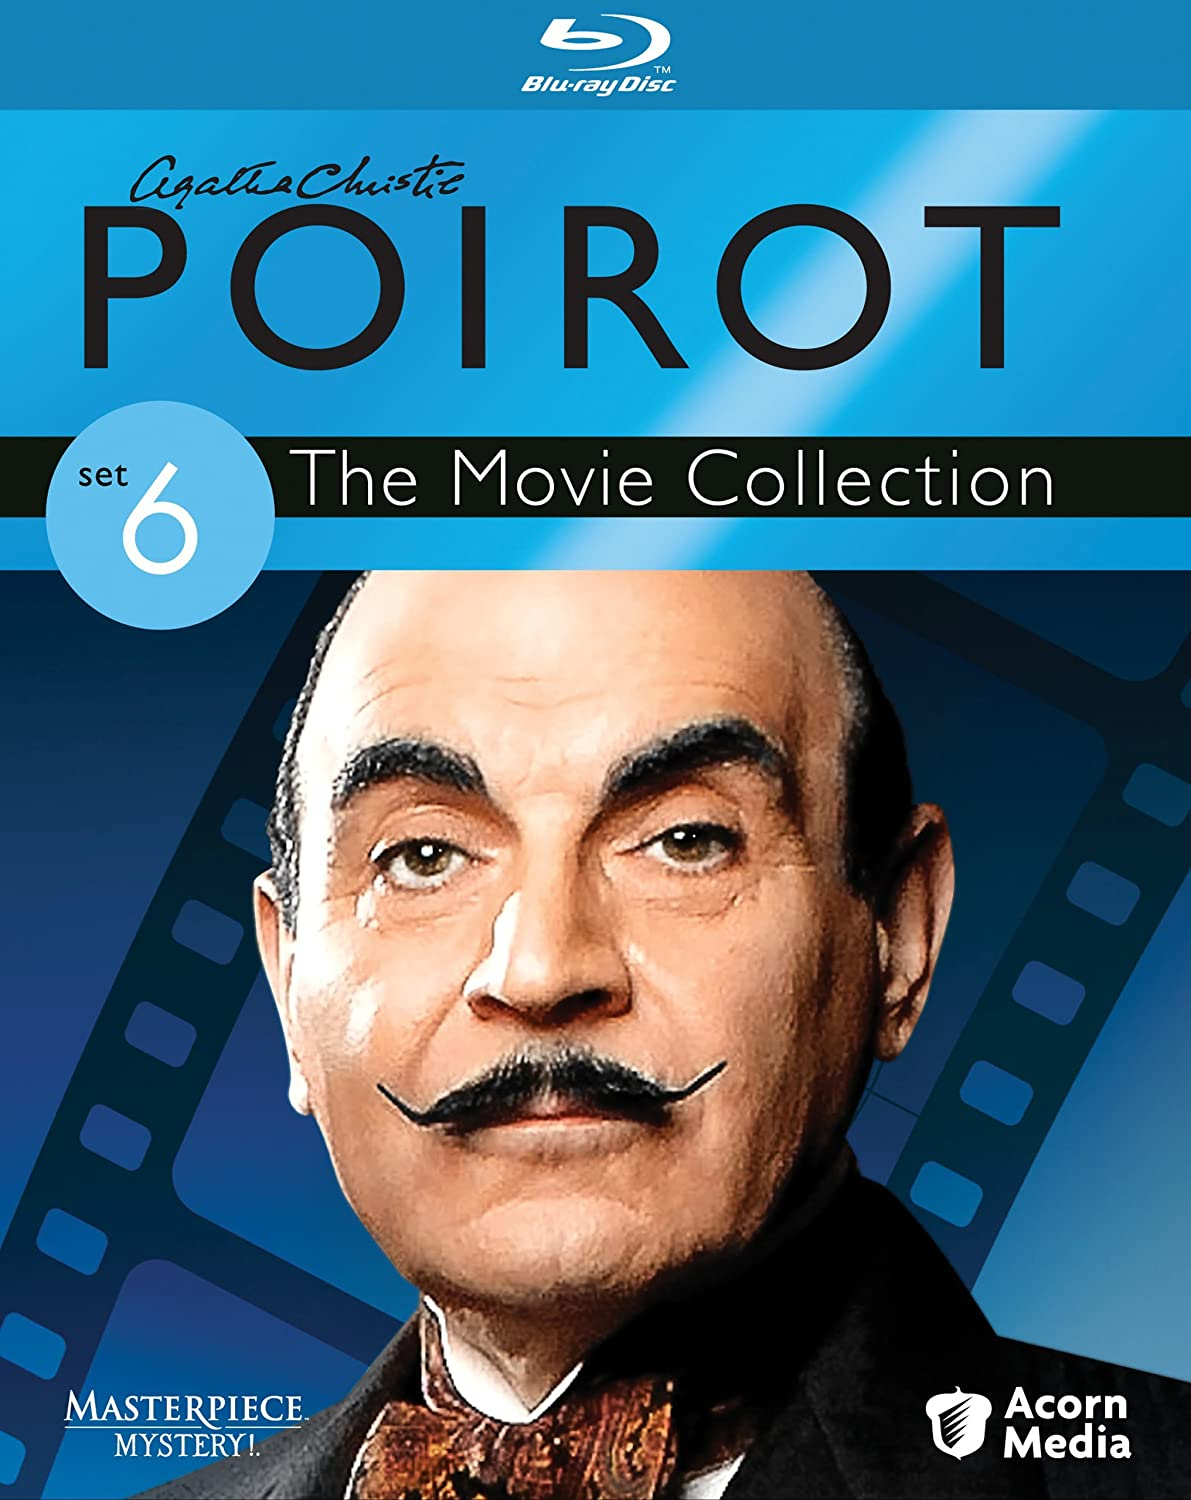 Agatha Christie S Poirot The Movie Collection Set 6 Blu Ray David Suchet Hugh Frasier Philip Jackson Charles Palmer Ashley Pearce Movies Tv